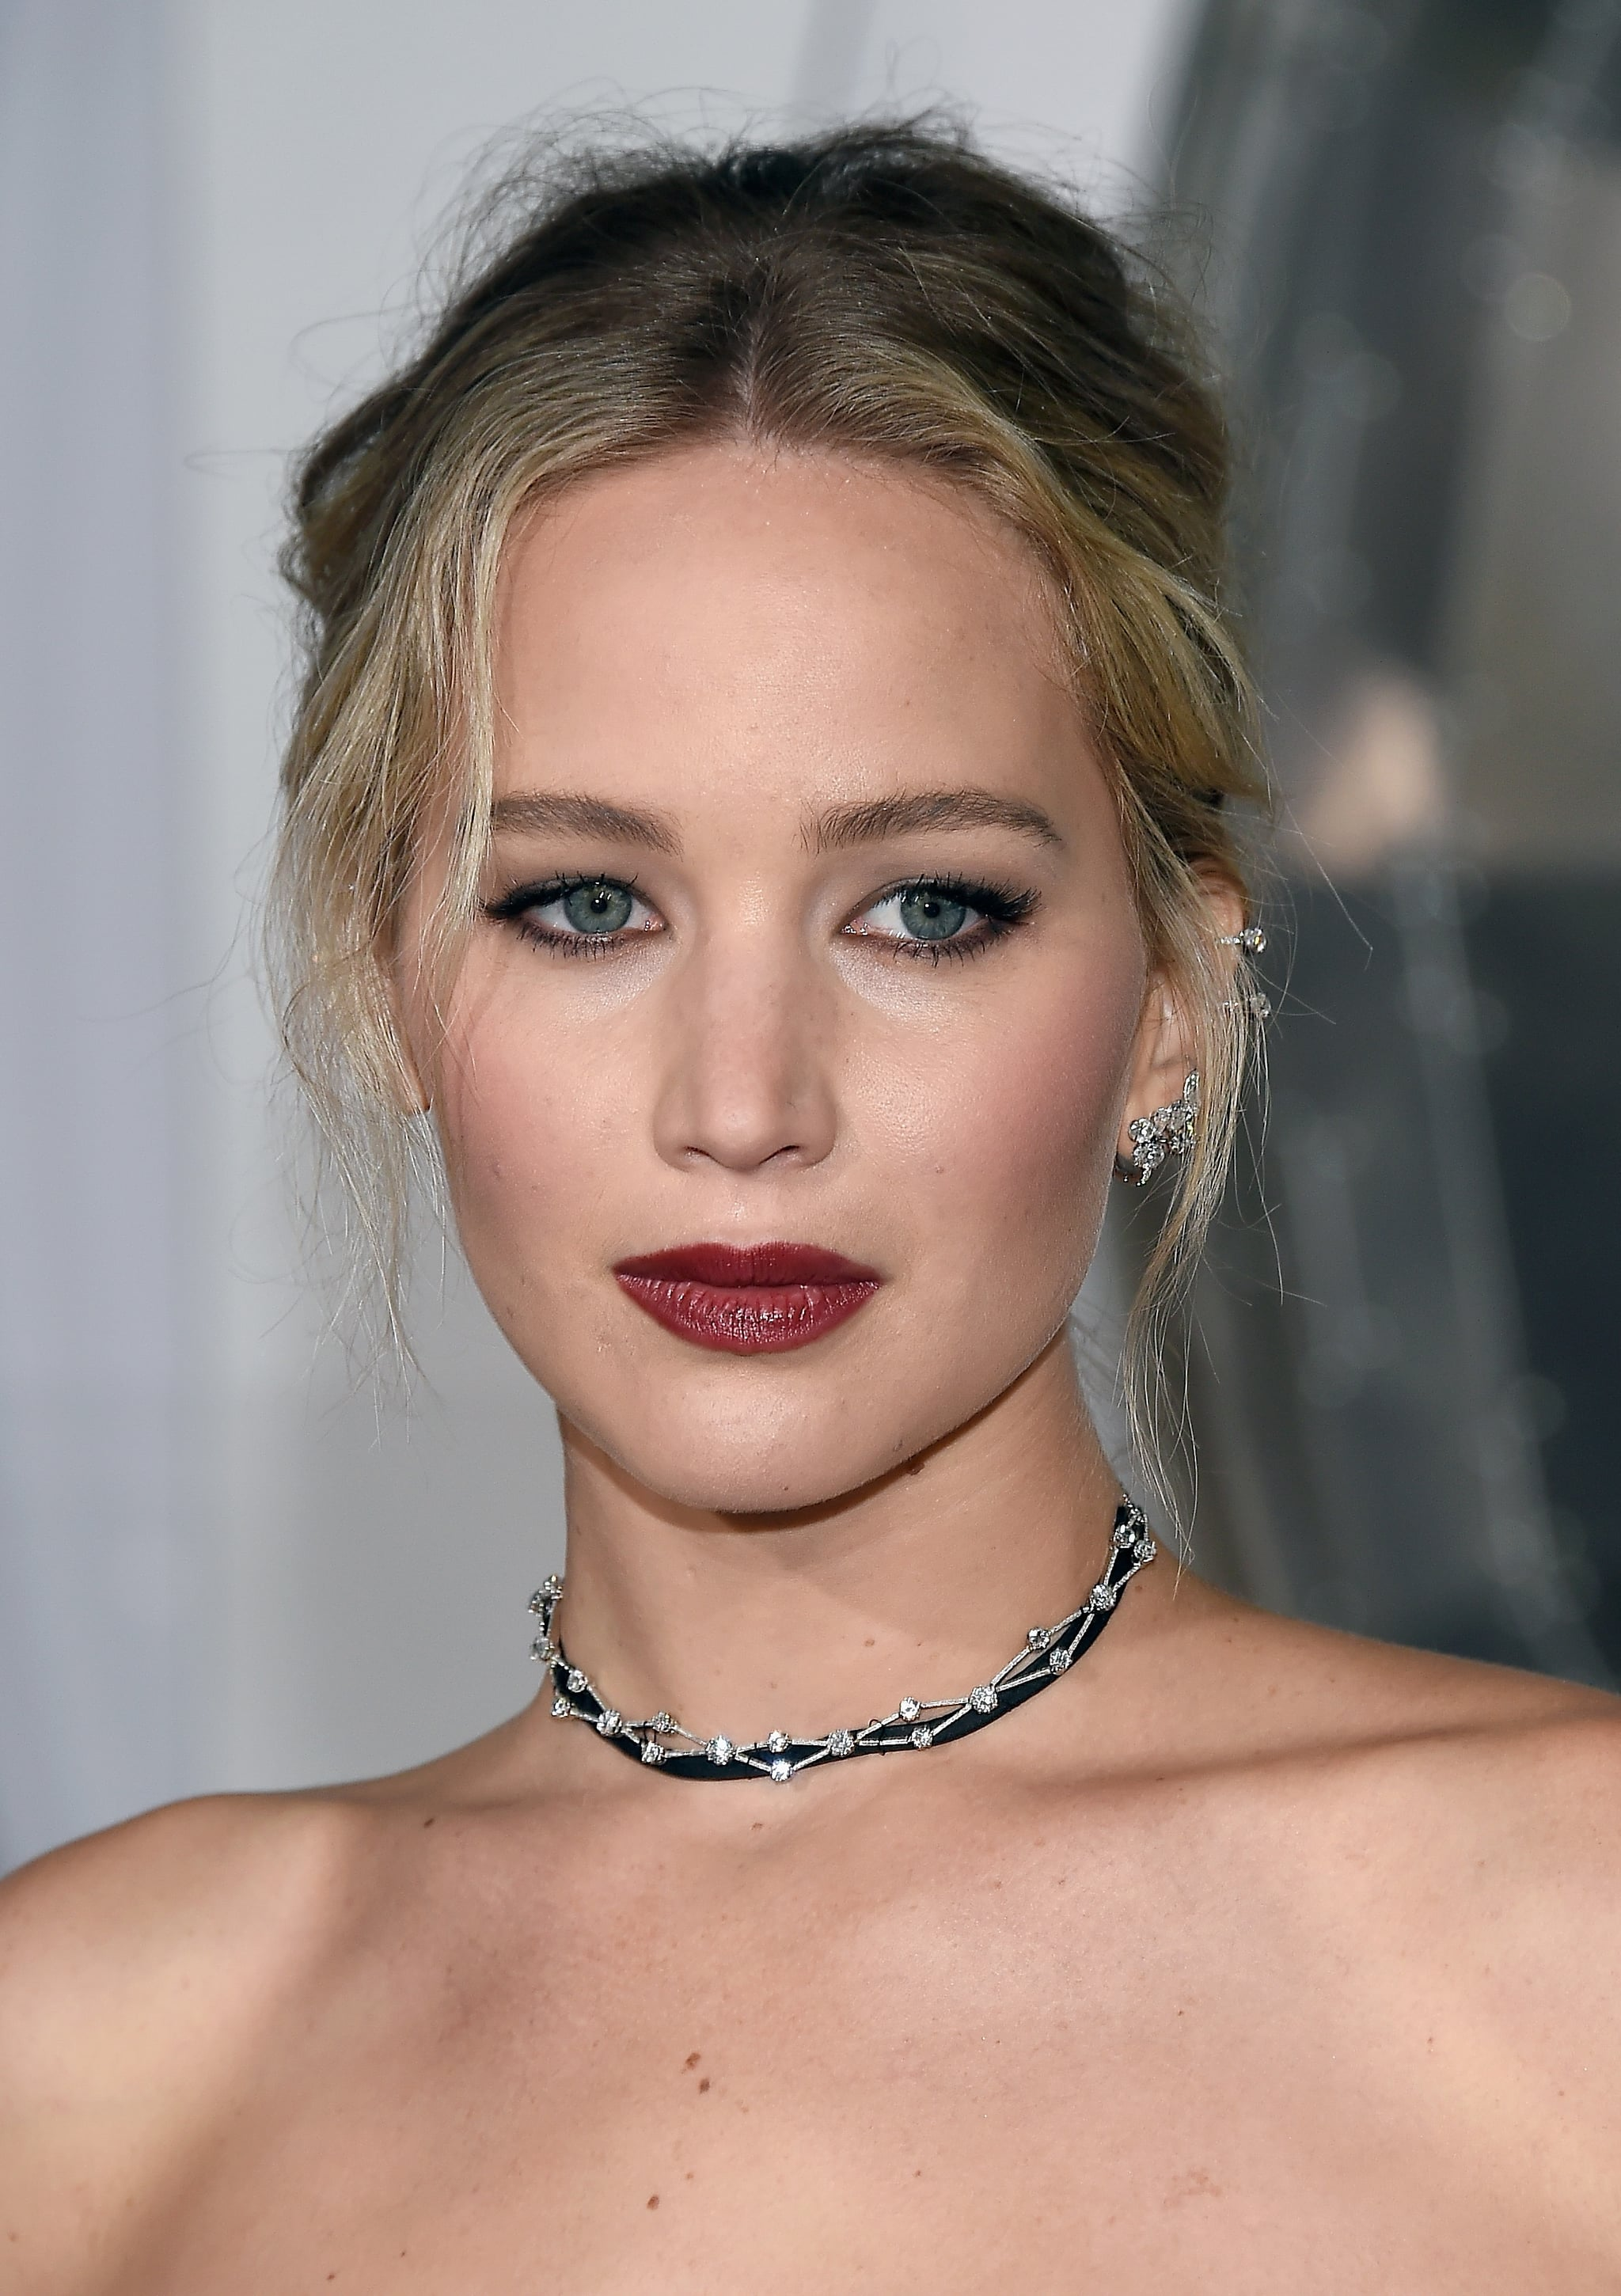 Jennifer Lawrence Gets A Facial After Sex - 2019 year